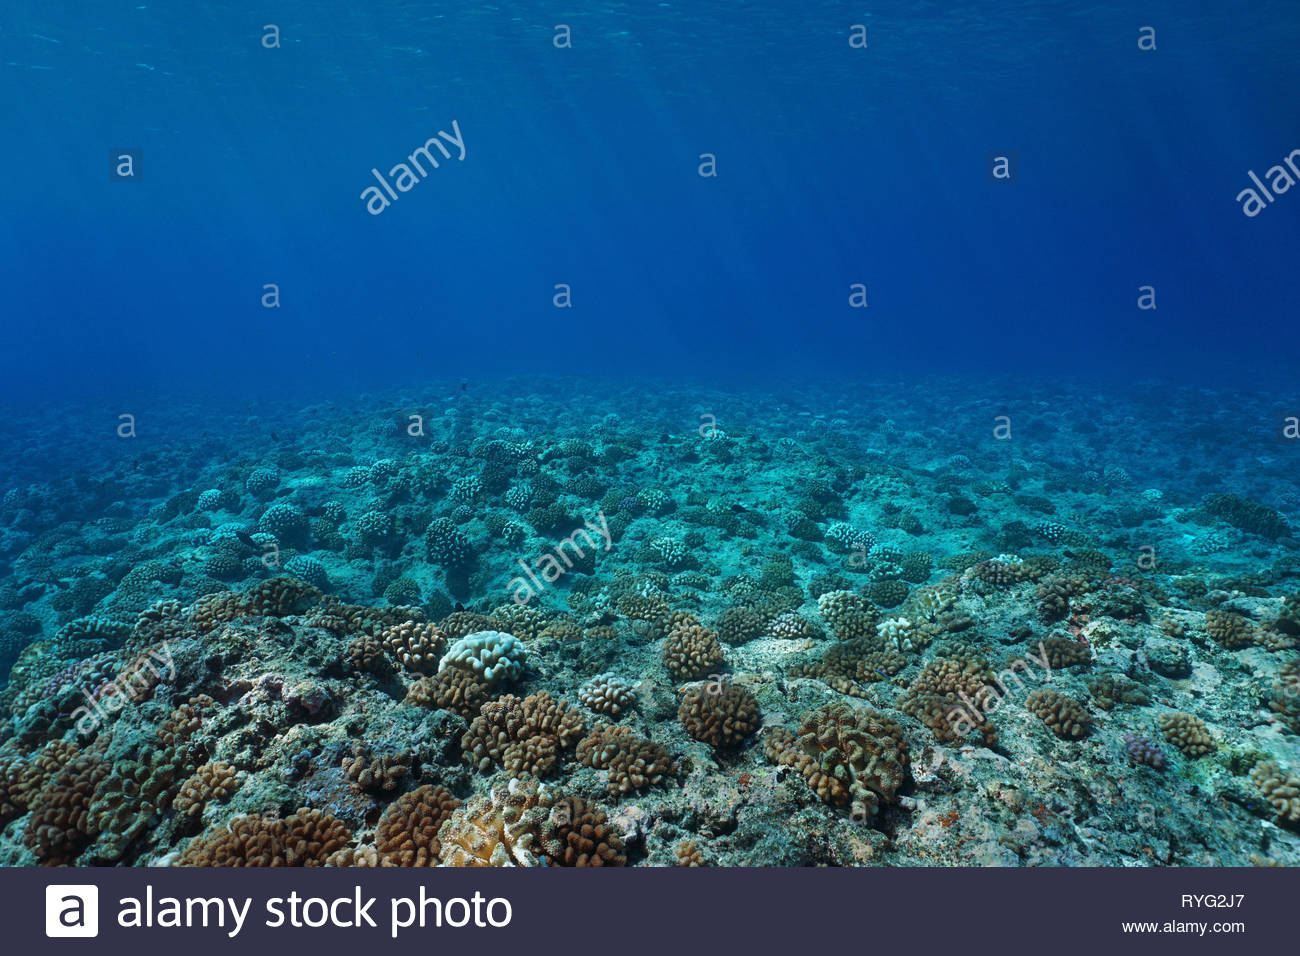 Seabed Background Stock Photos Seabed Background Stock Images 1300x956